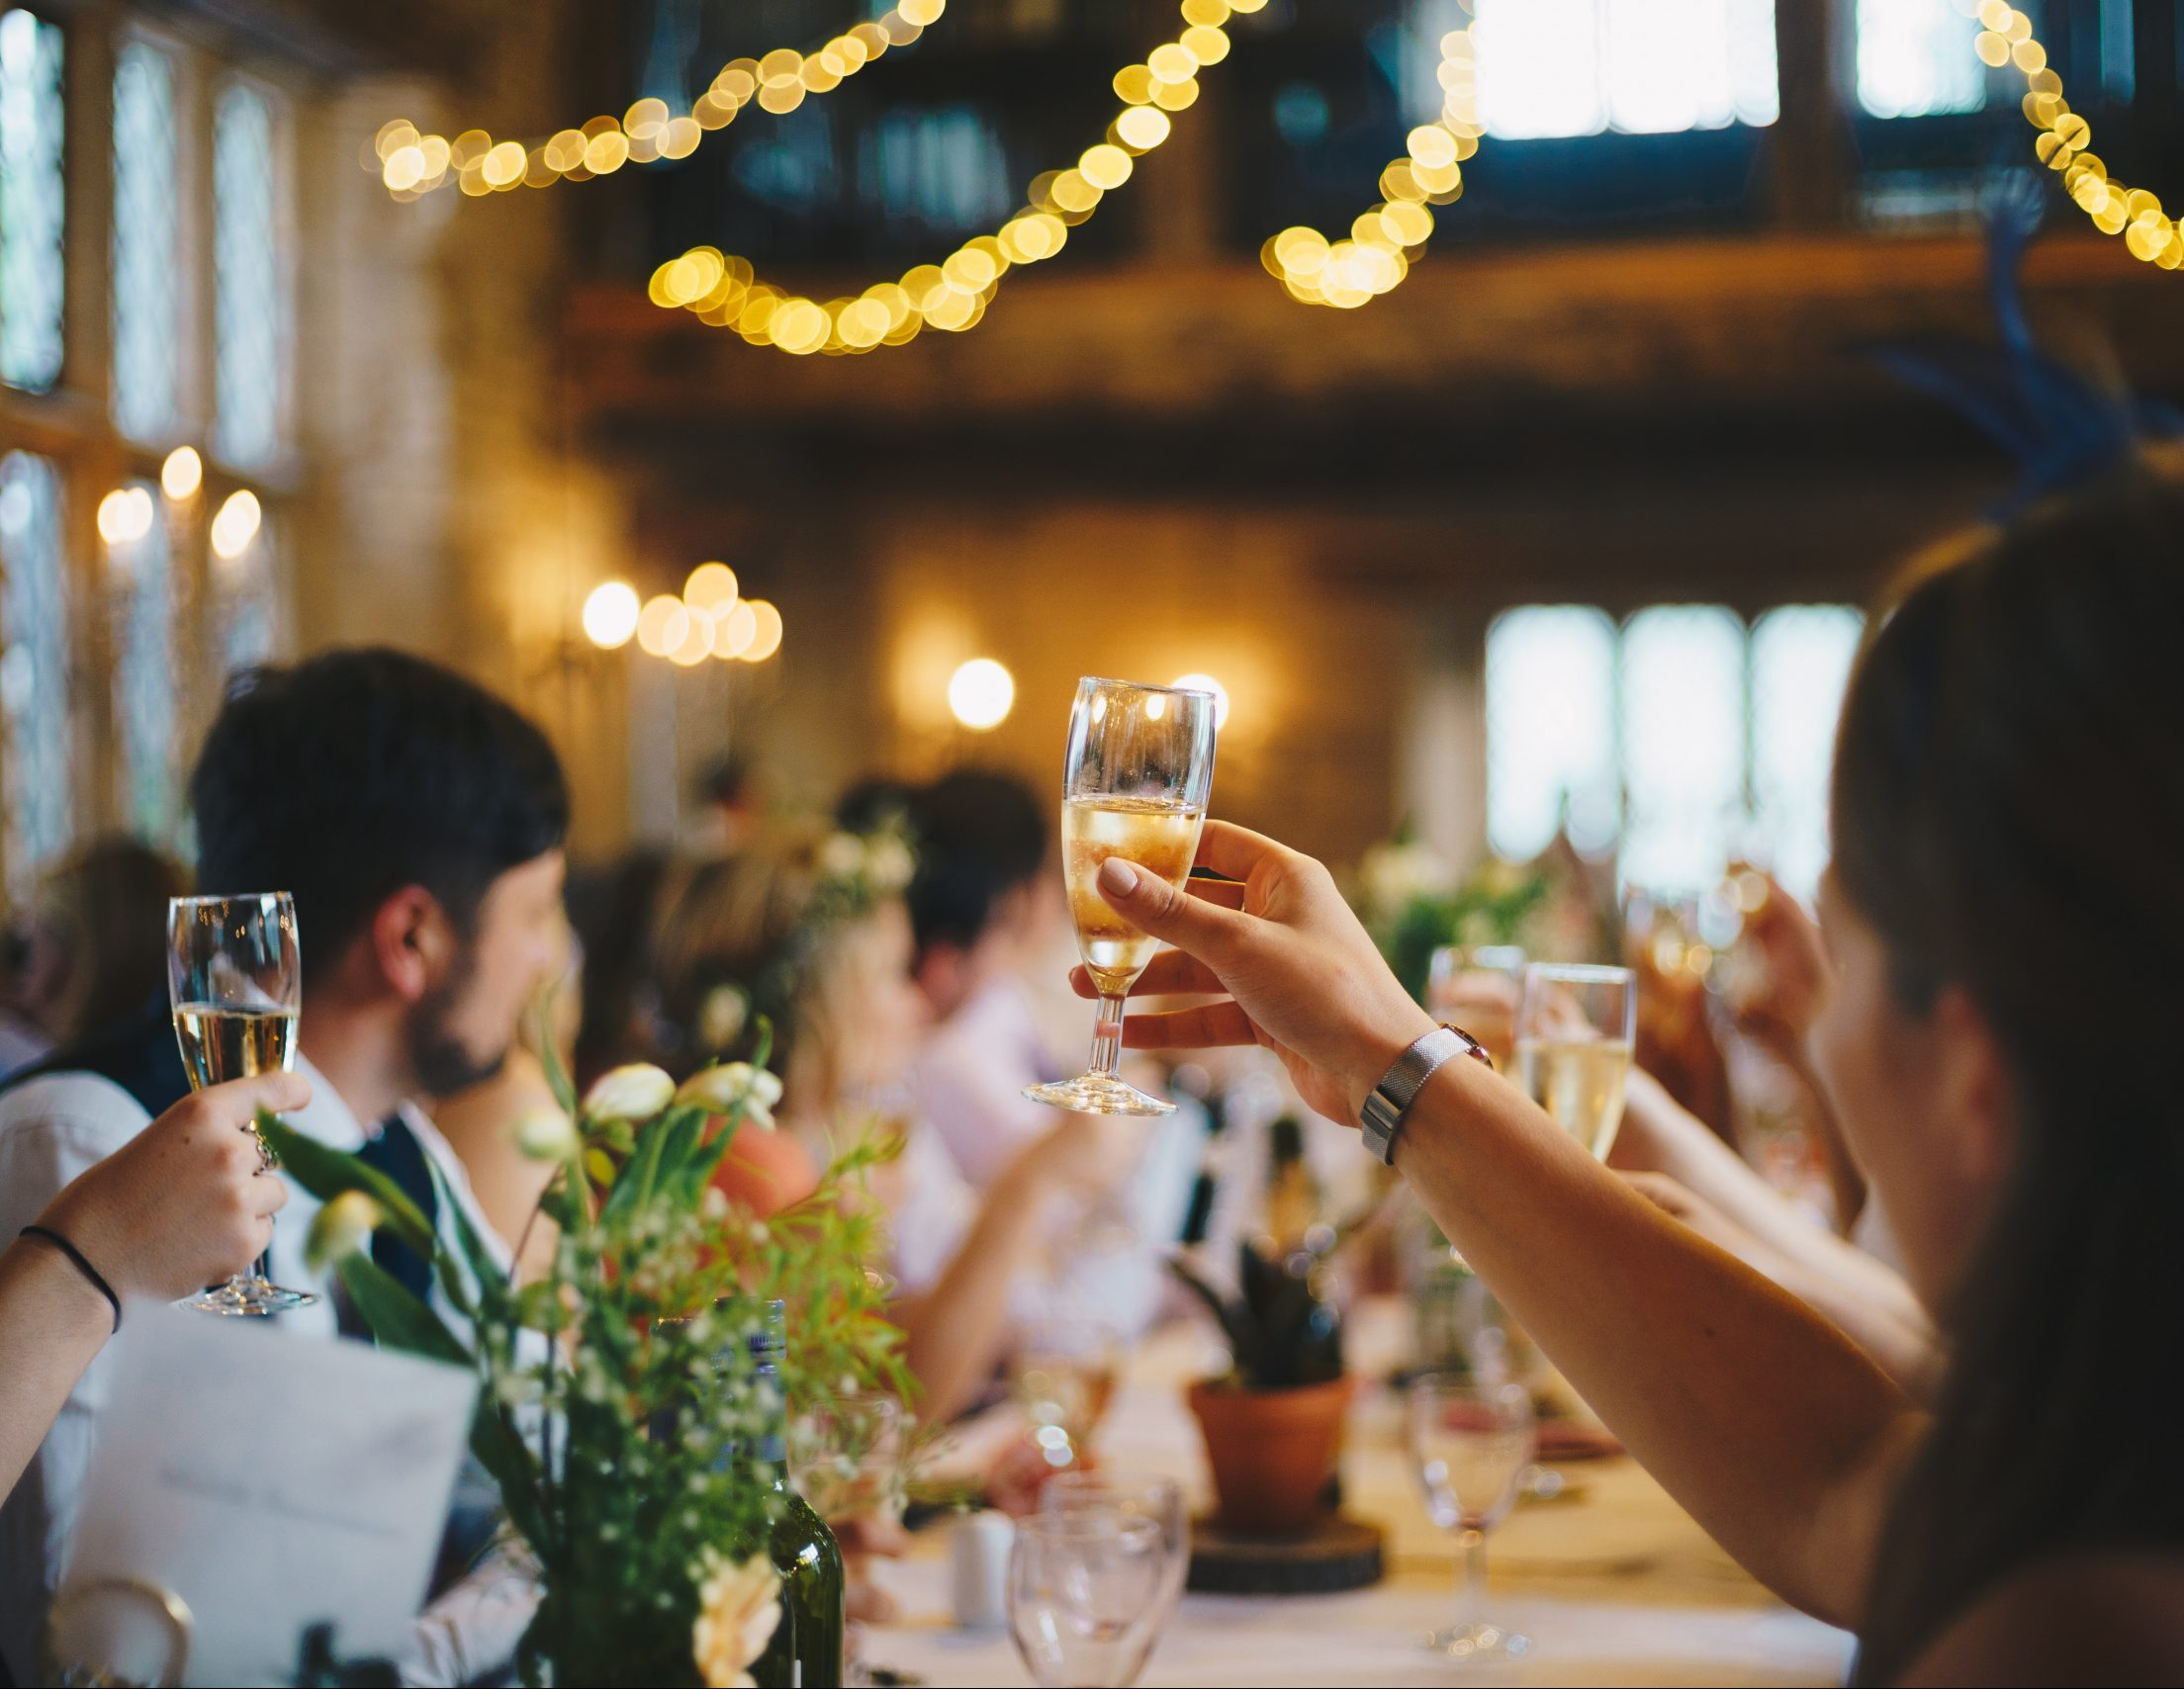 alasdair elmes ULHxWq8reao unsplash scaled e1619601735649 Here Are The Cringiest Wedding Moments Ever Arranged By The Happy Couple Copy